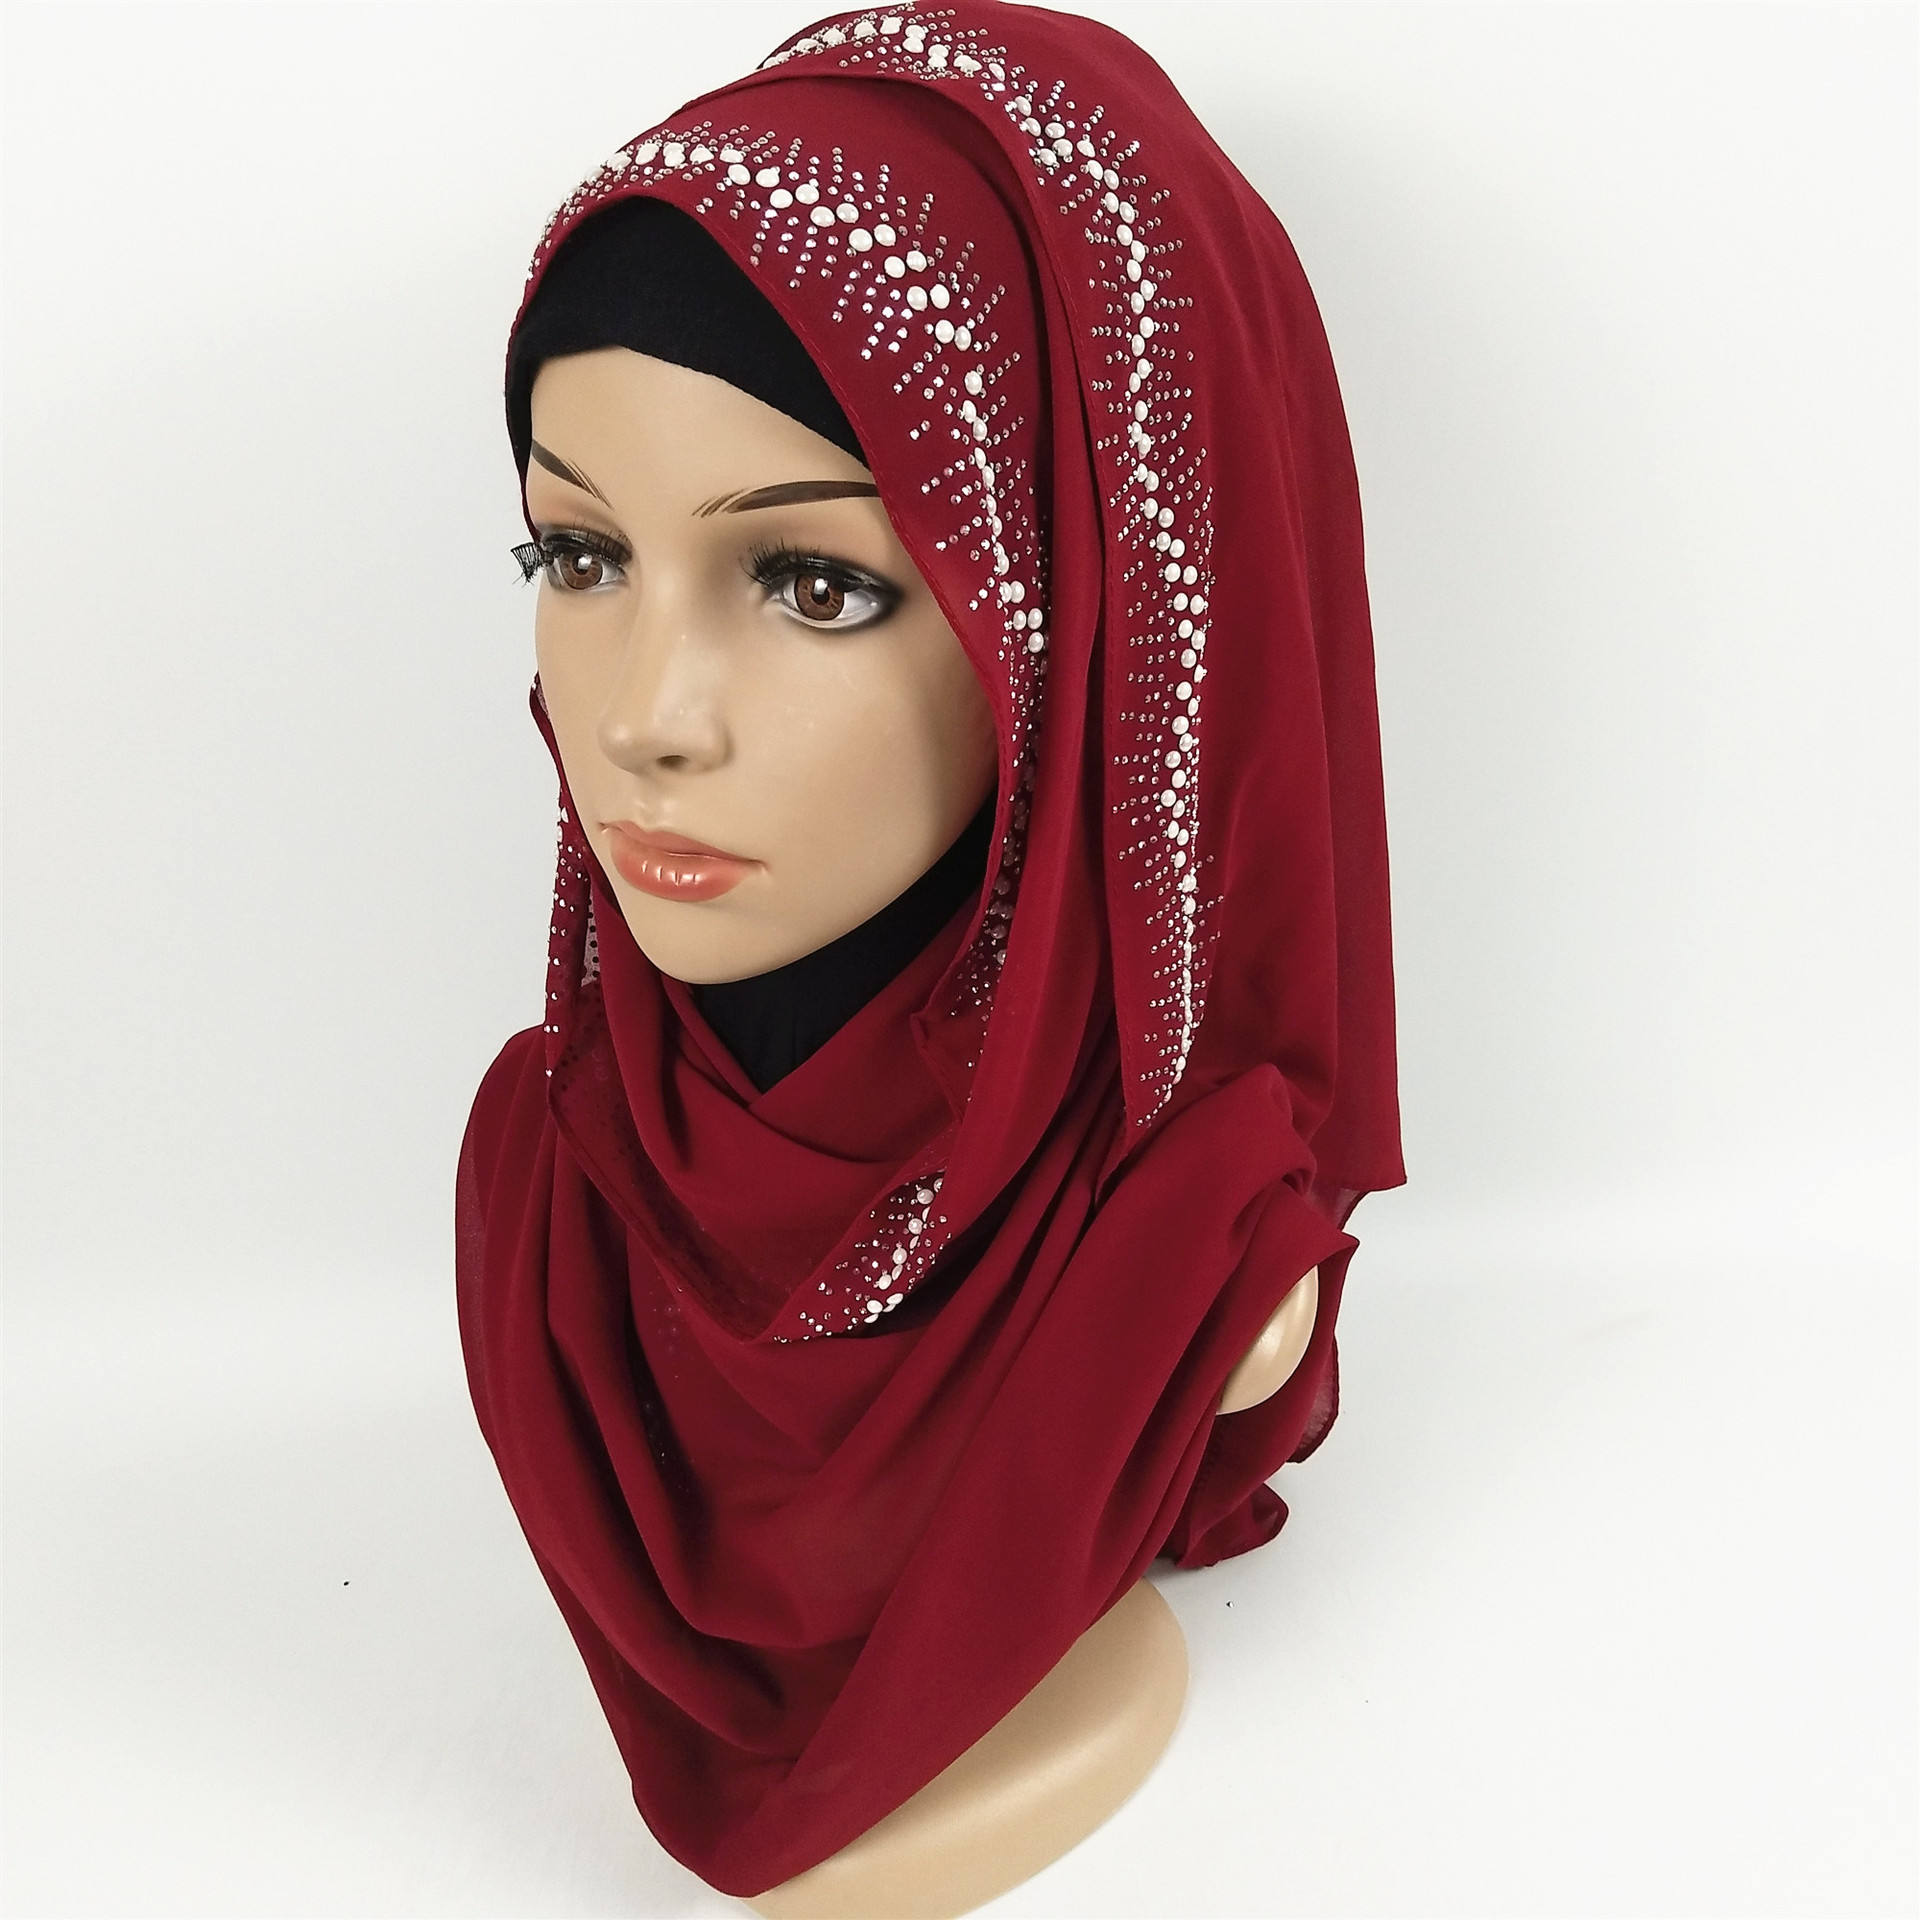 Simples most beautiful chiffon hijab xaile do lenço com Diamante